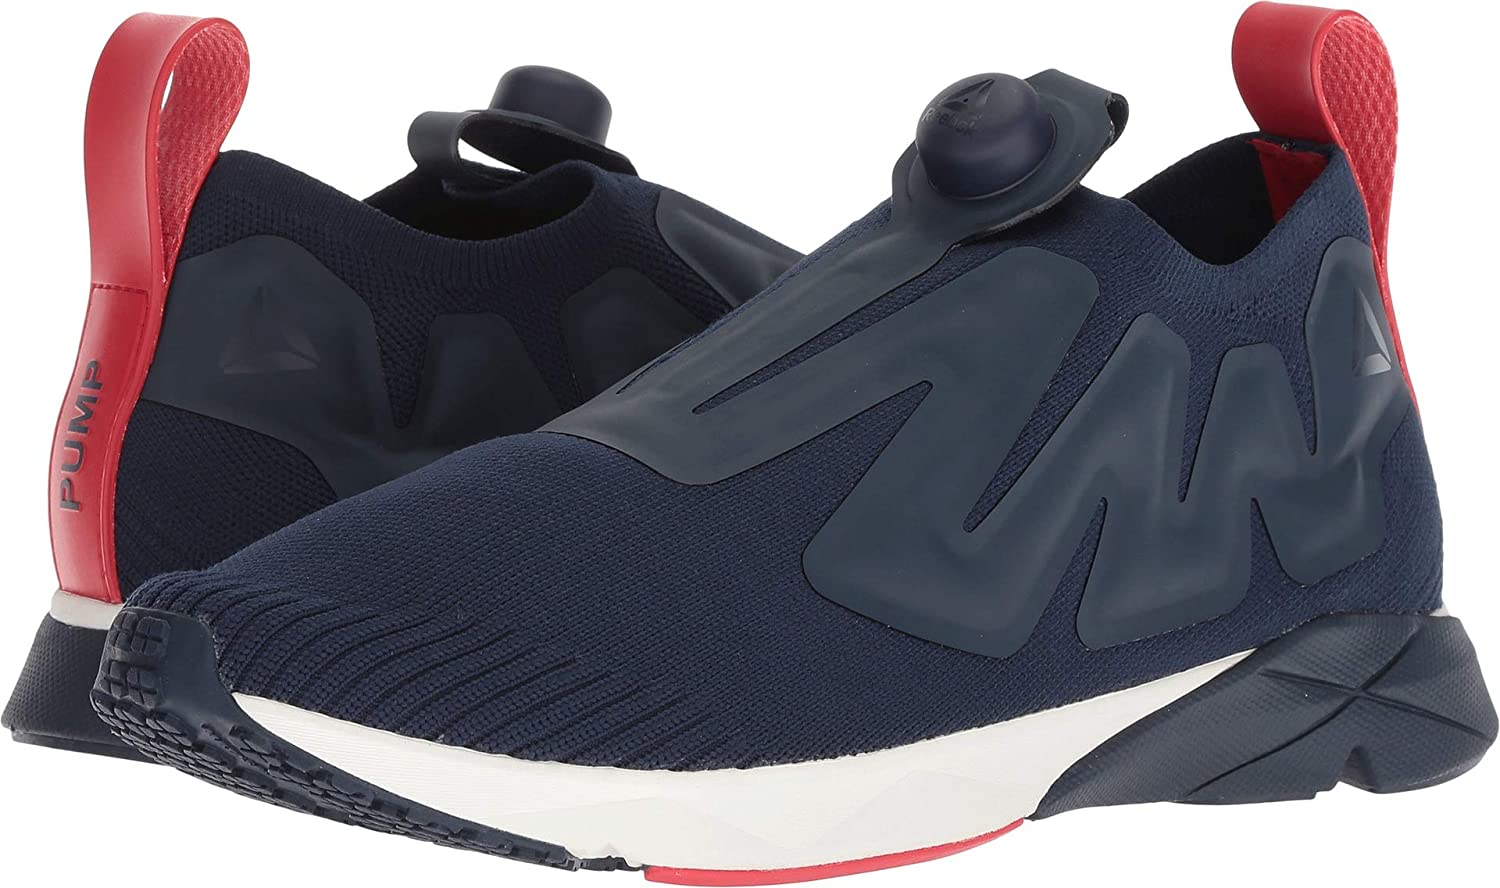 7c93beb5 Reebok Unisex Pump Sumpreme Collegiate Navy/Chalk/Primal Red/White 13 Women  / 11.5 Men M US Medium: Amazon.co.uk: Shoes & Bags